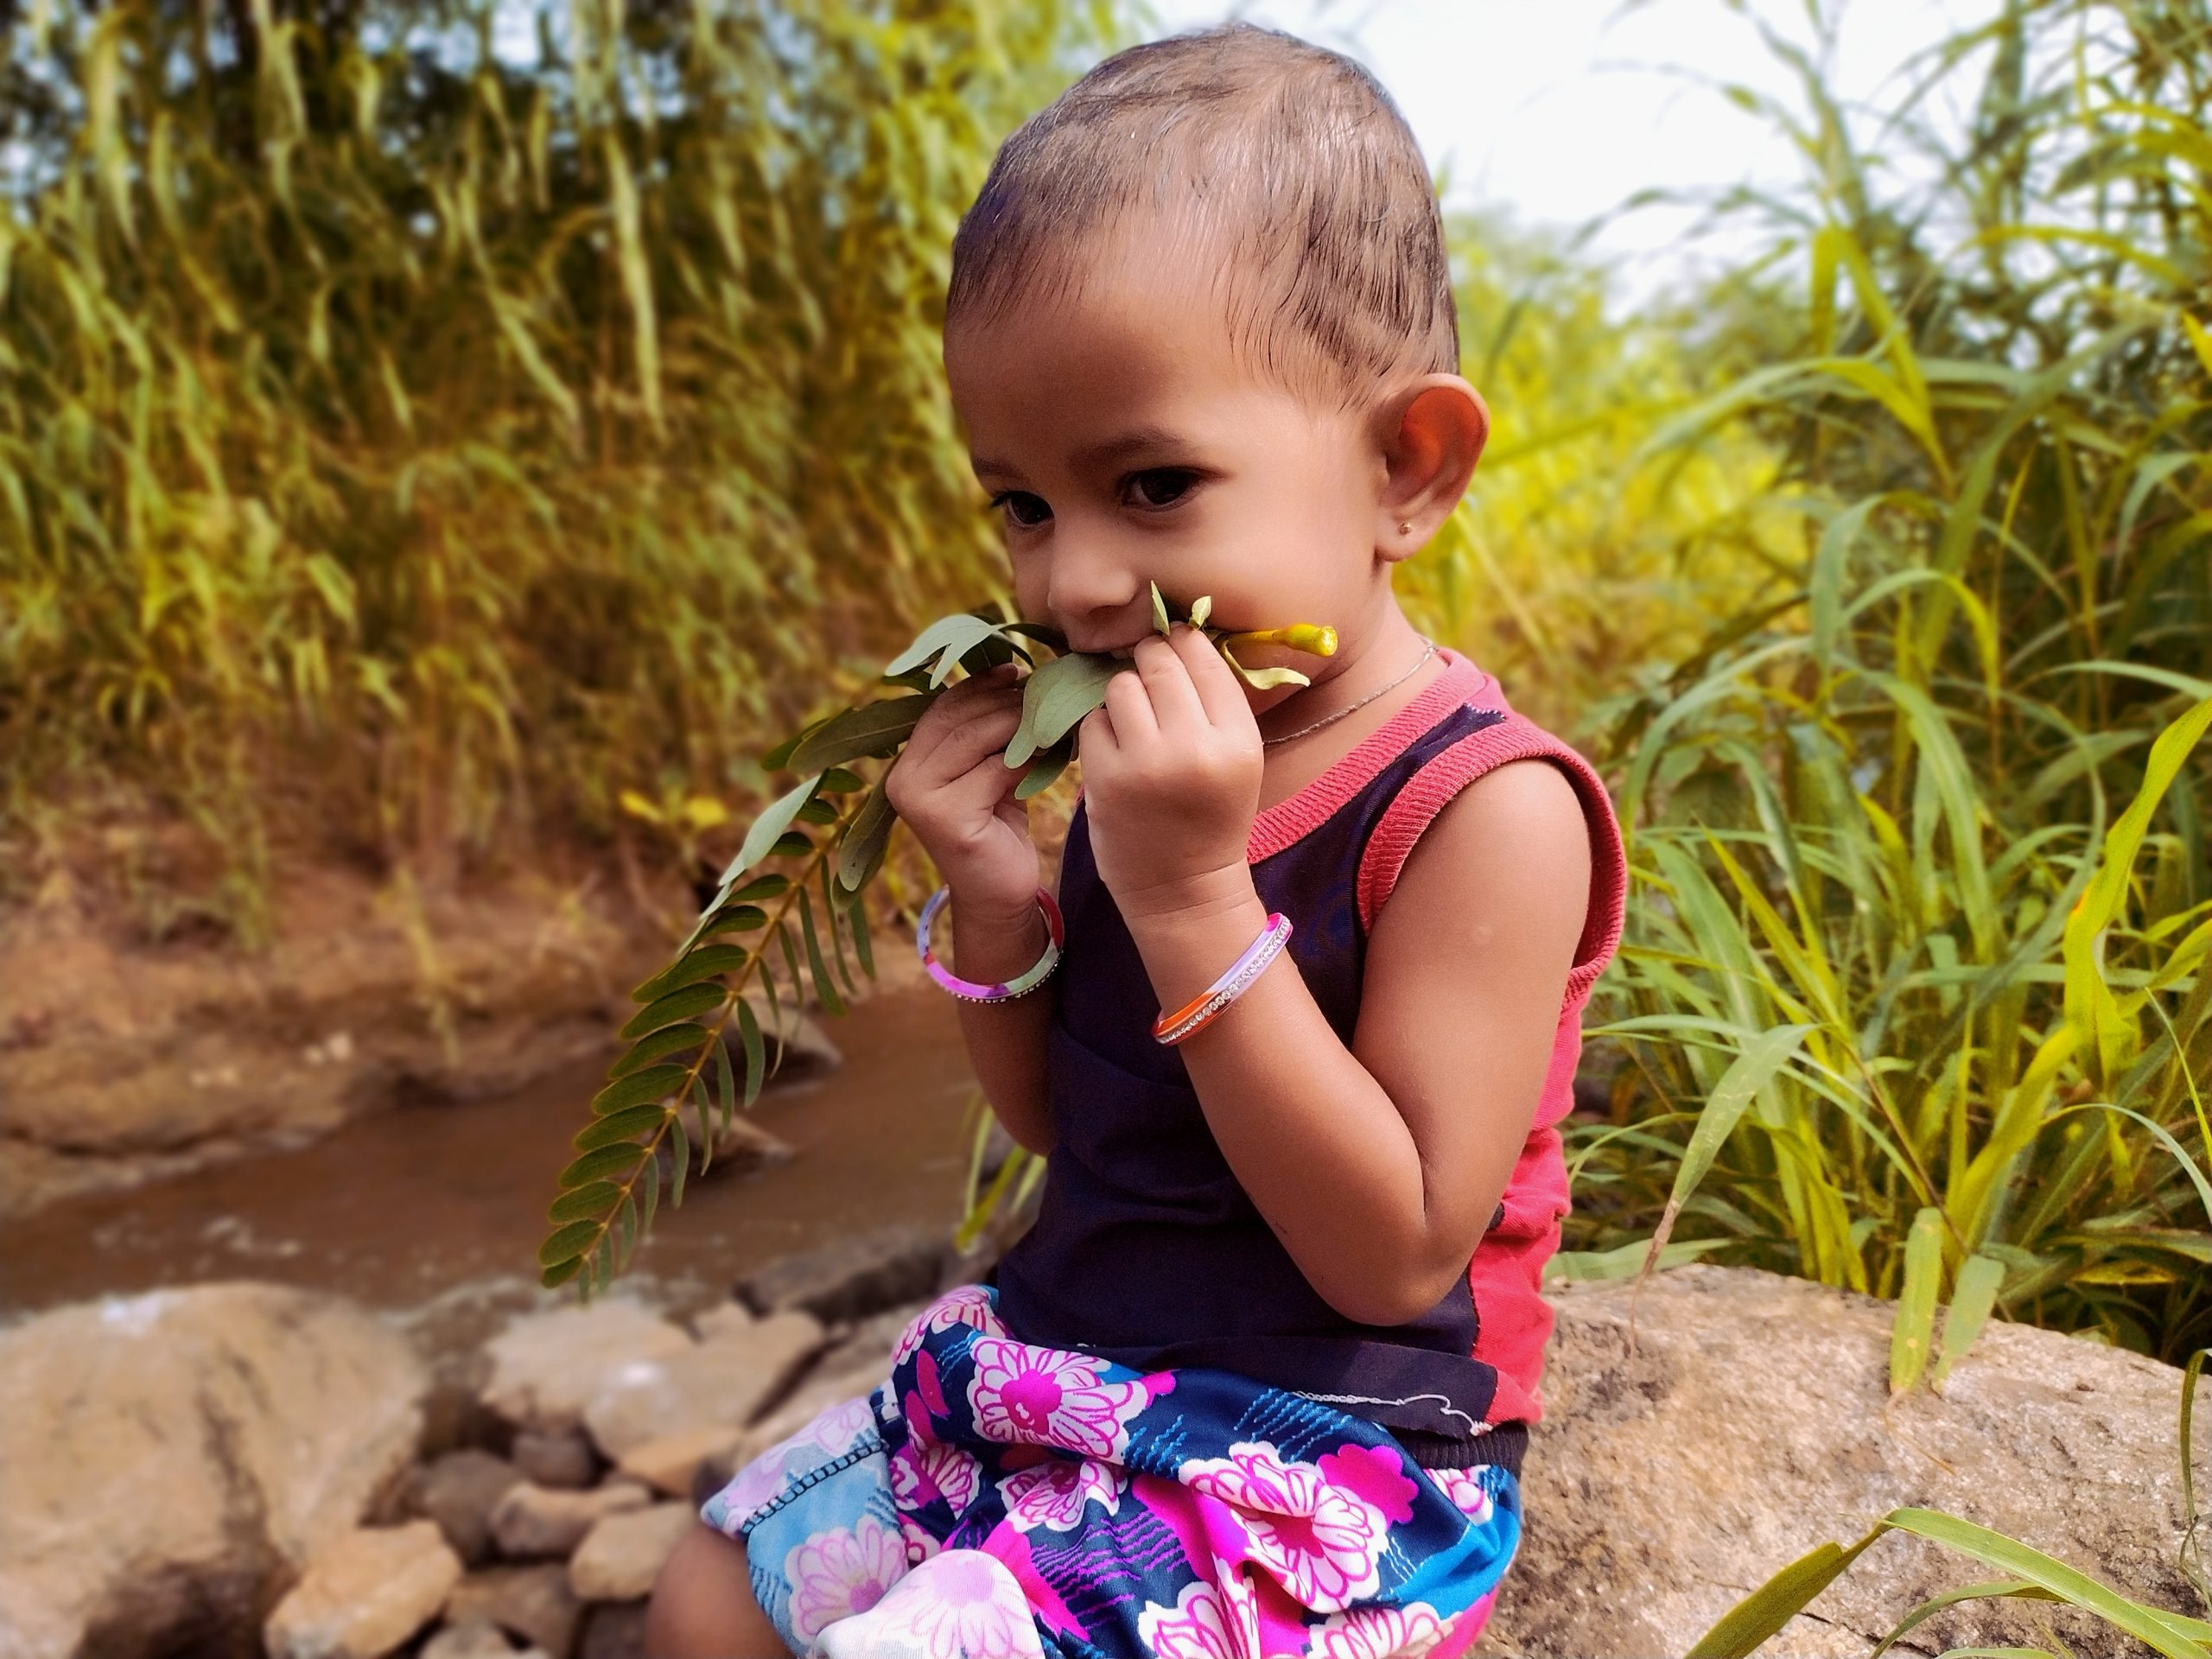 A baby eating soft leaves